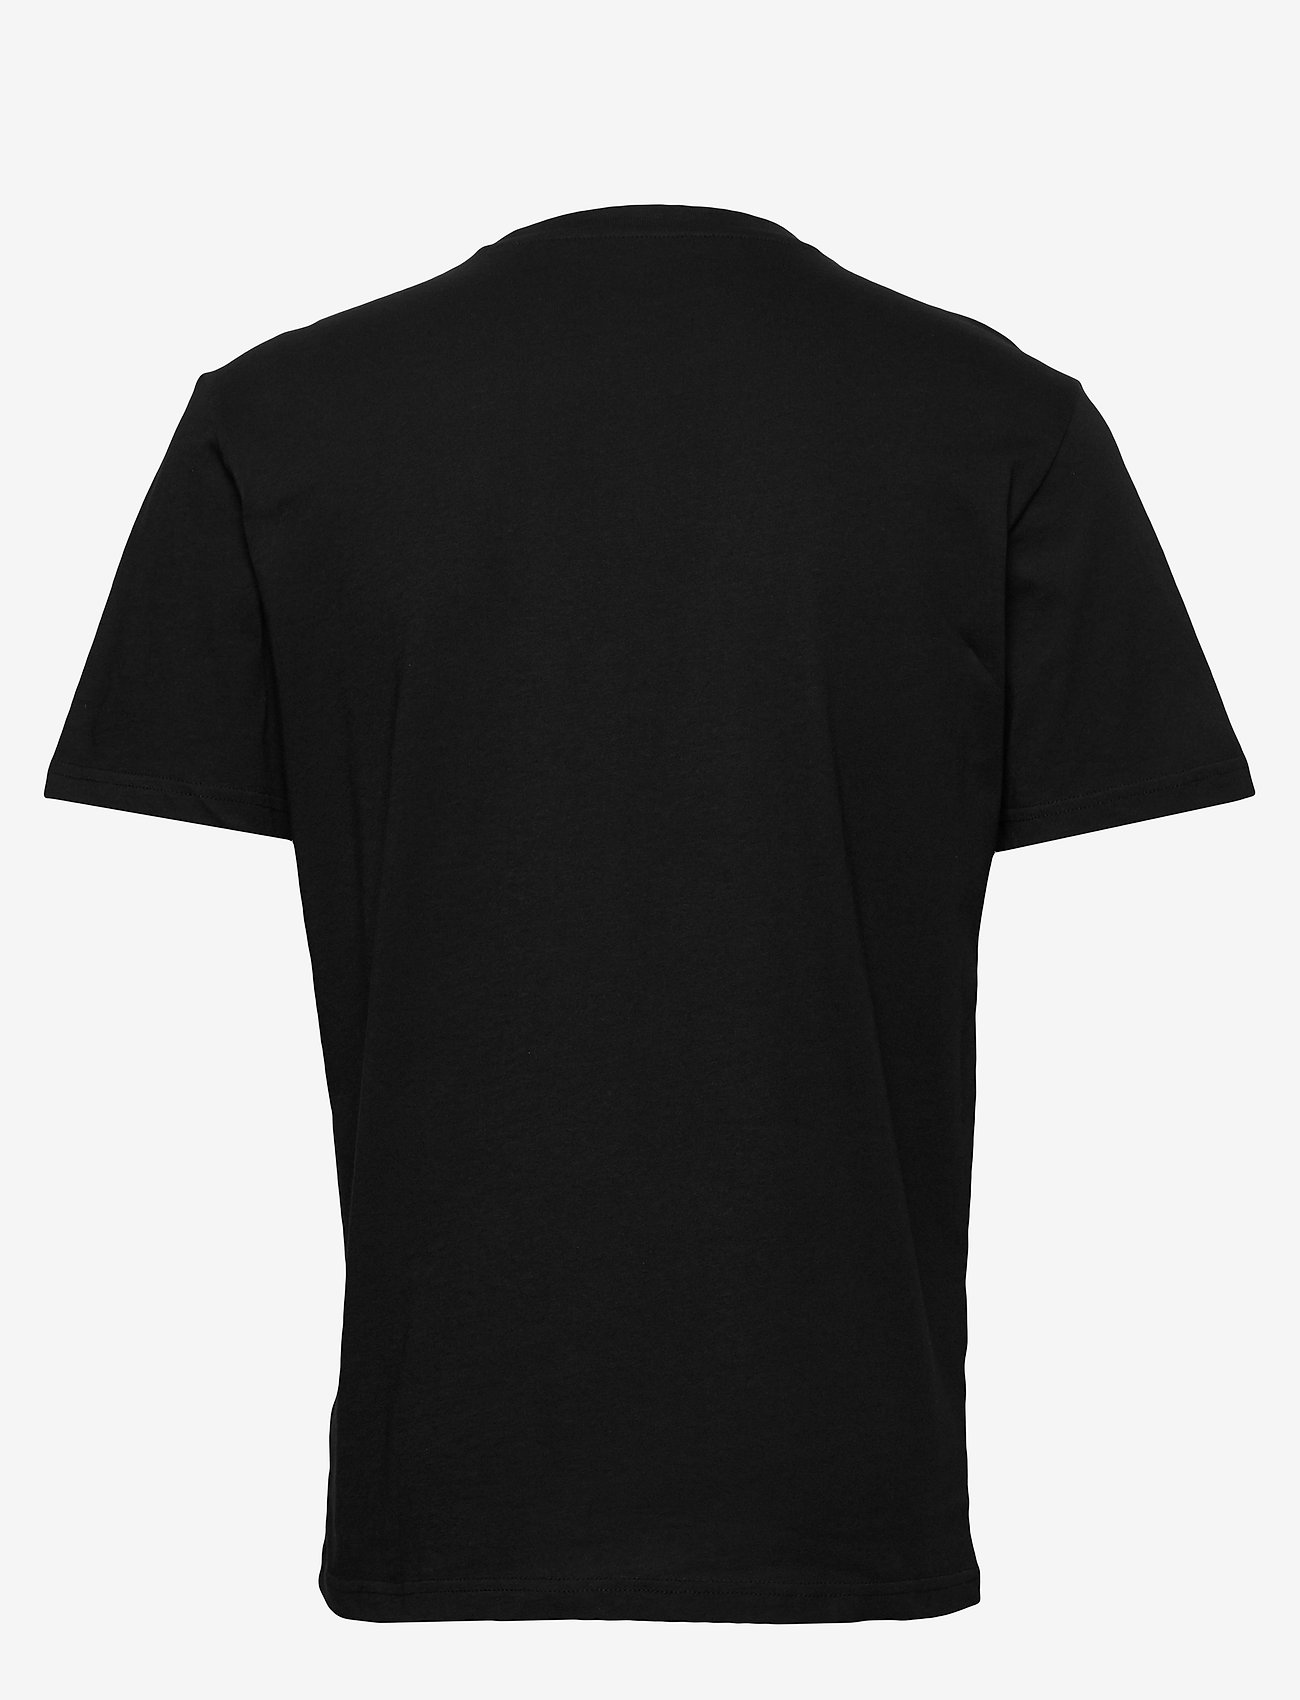 Lee Jeans - WOBBLY LOGO TEE - short-sleeved t-shirts - black - 1